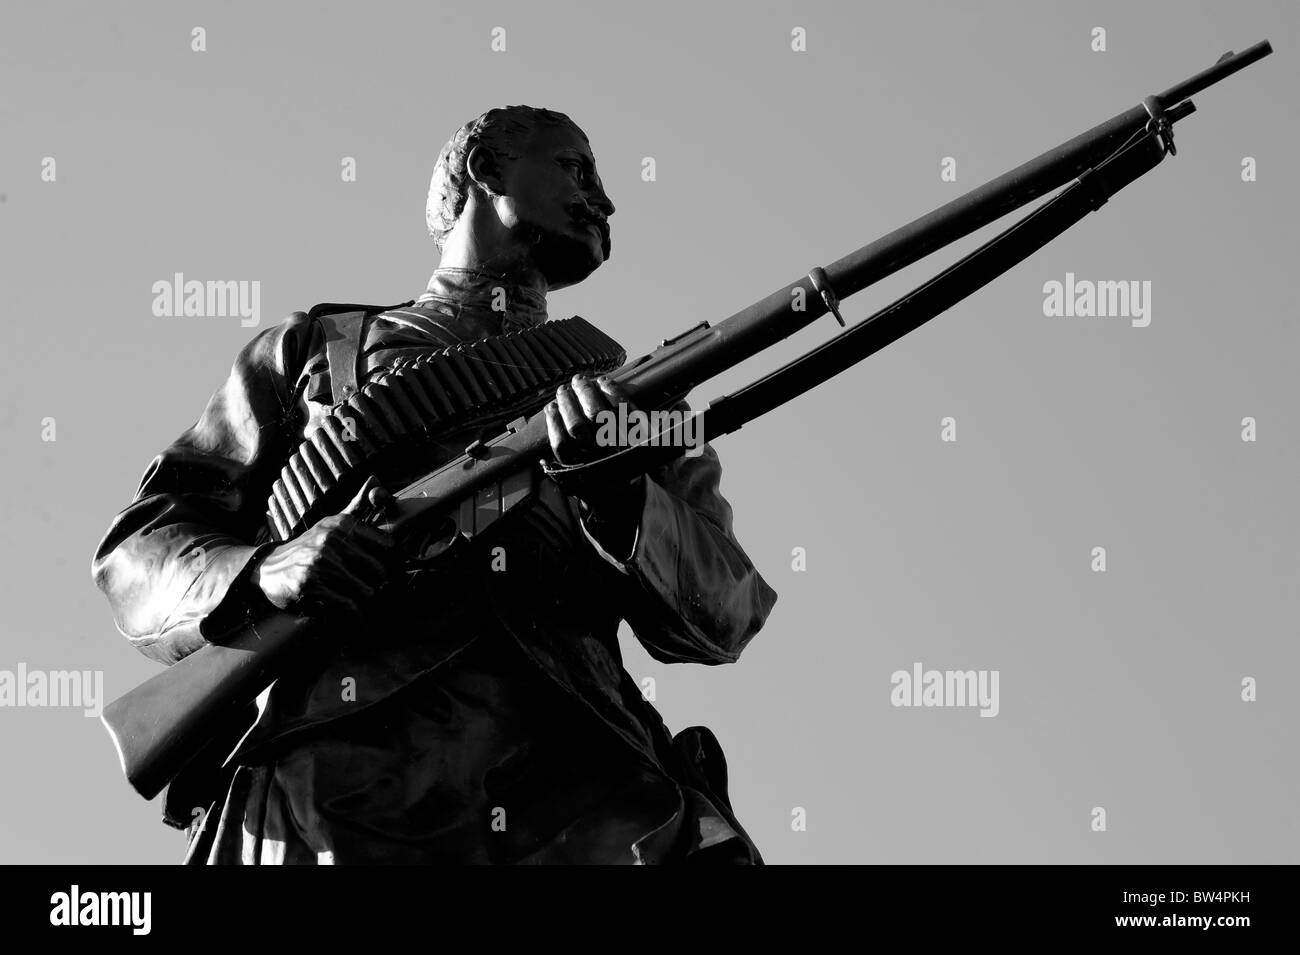 sculpture scottish scotalnd soldier highlander stirling - Stock Image